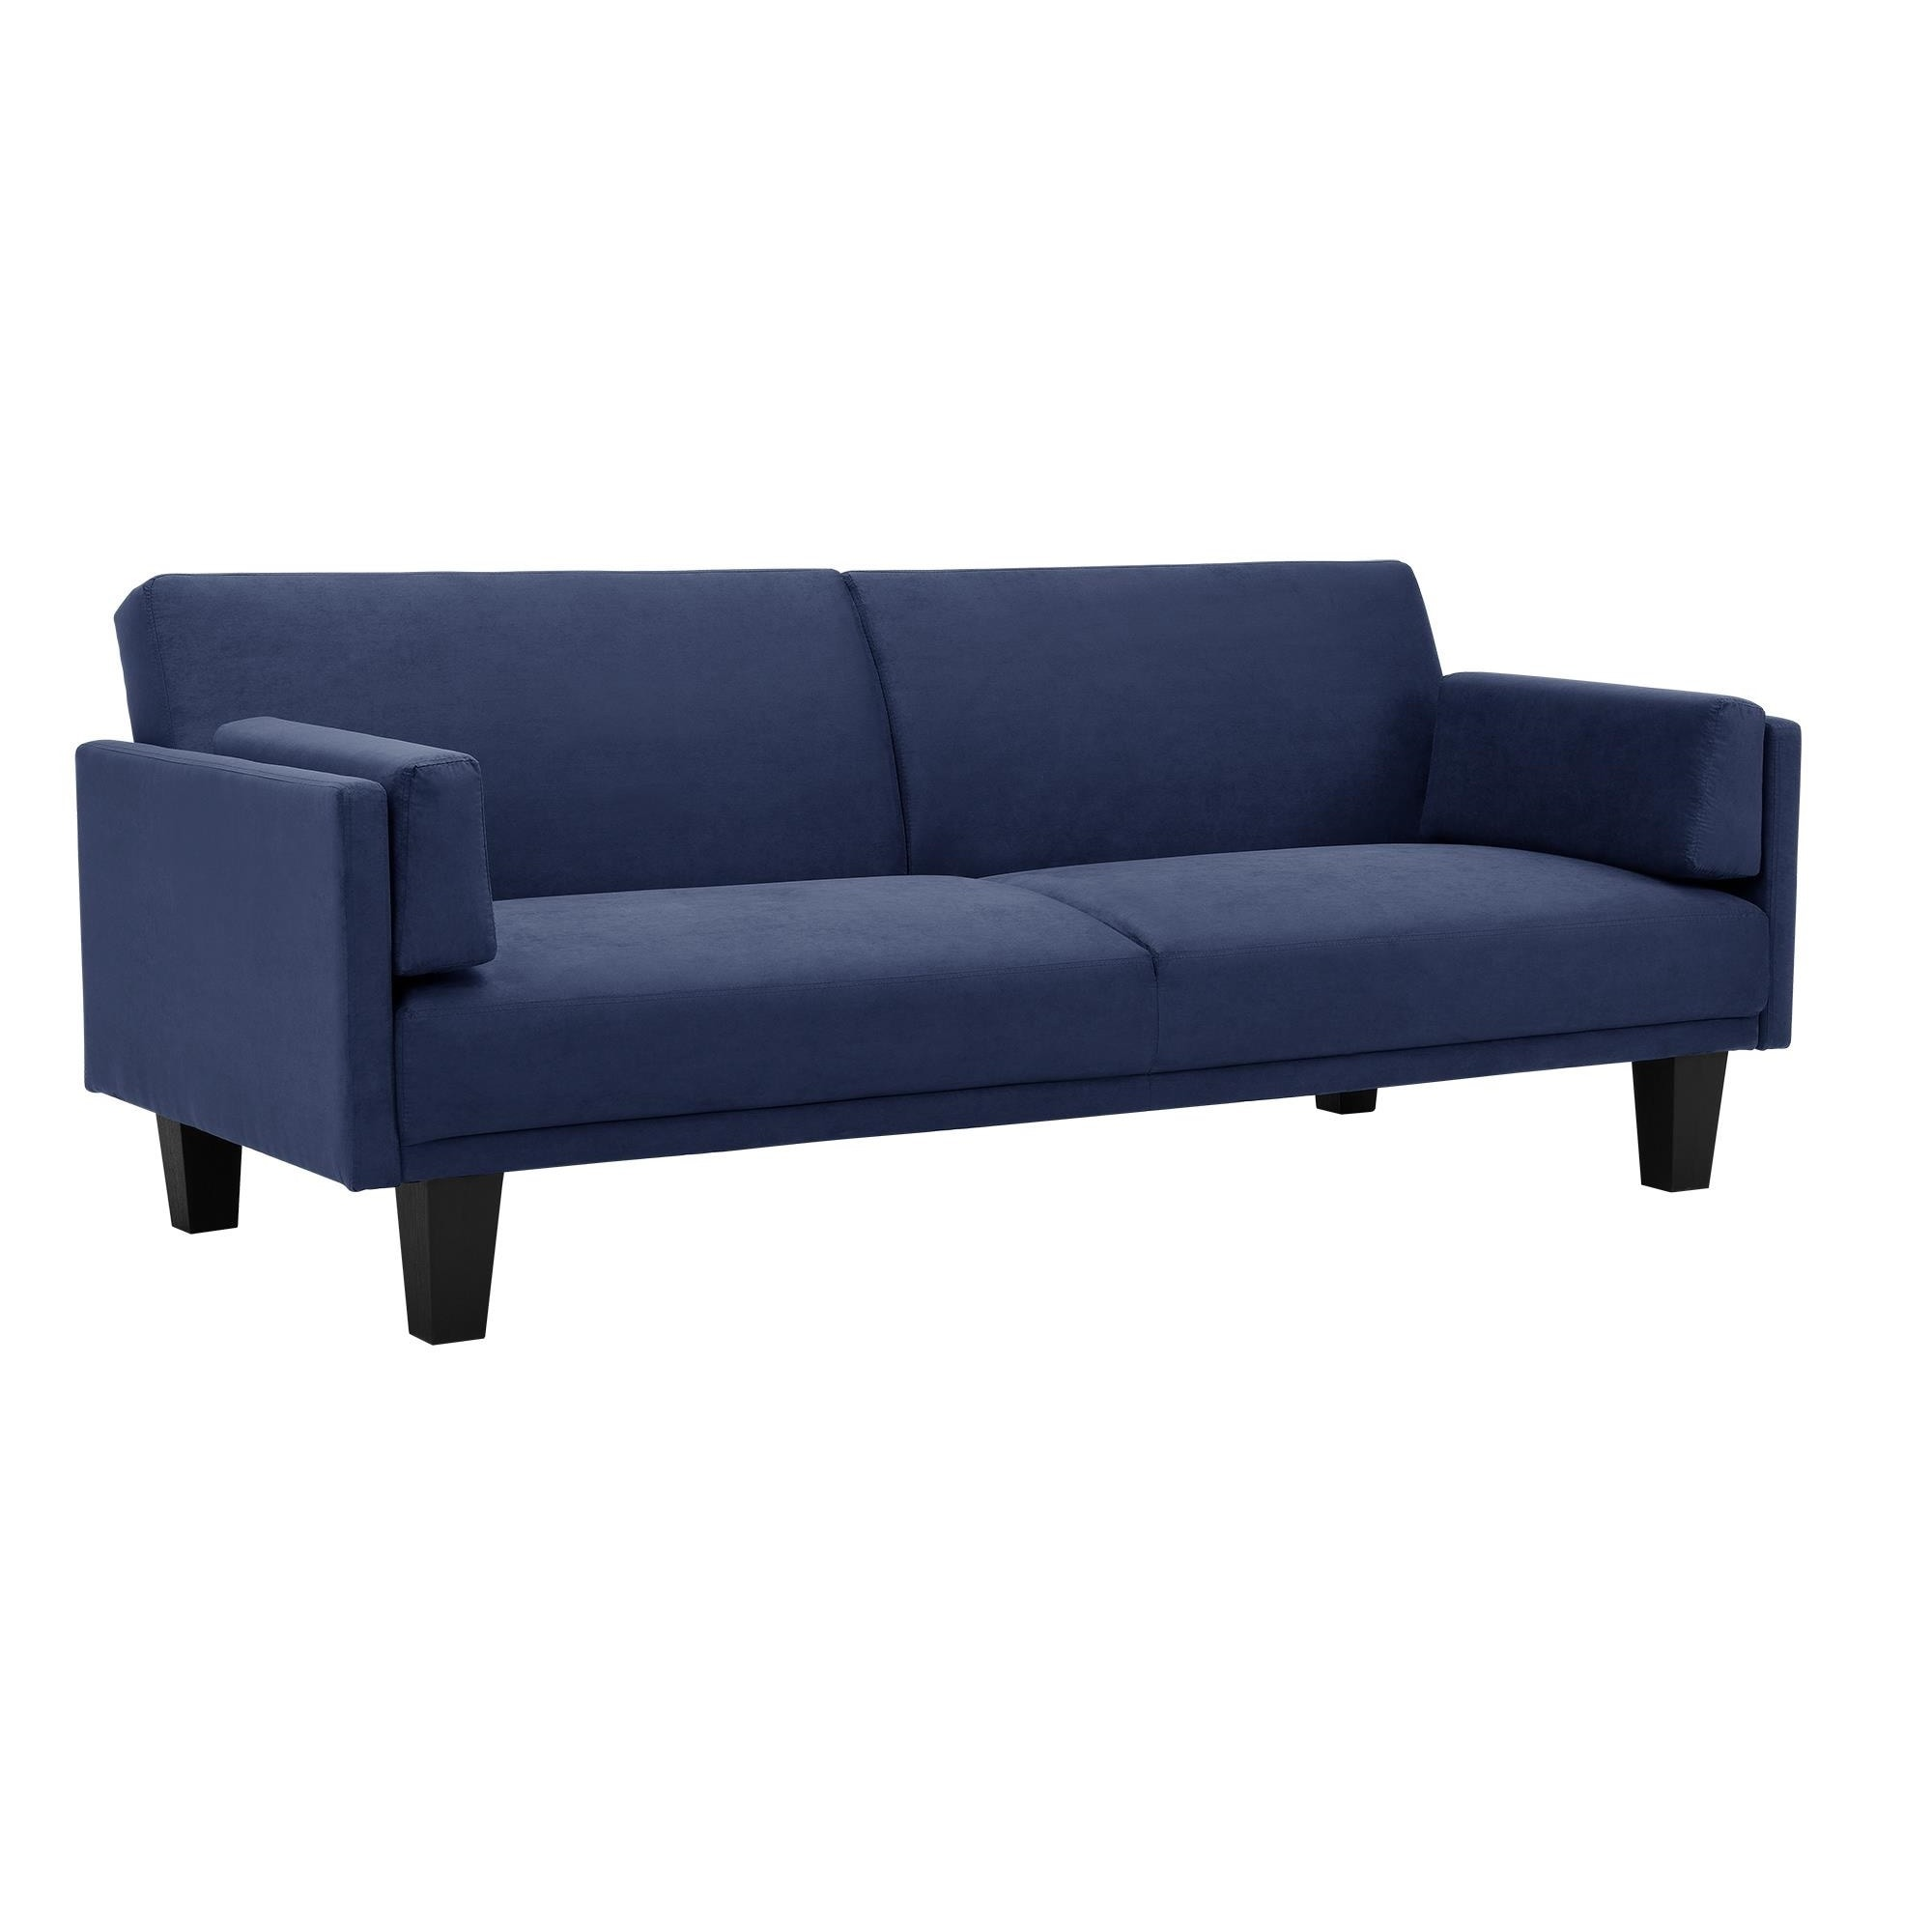 Dhp Metro Navy Blue Futon Sofa Bed Free Shipping Today Com 9787843